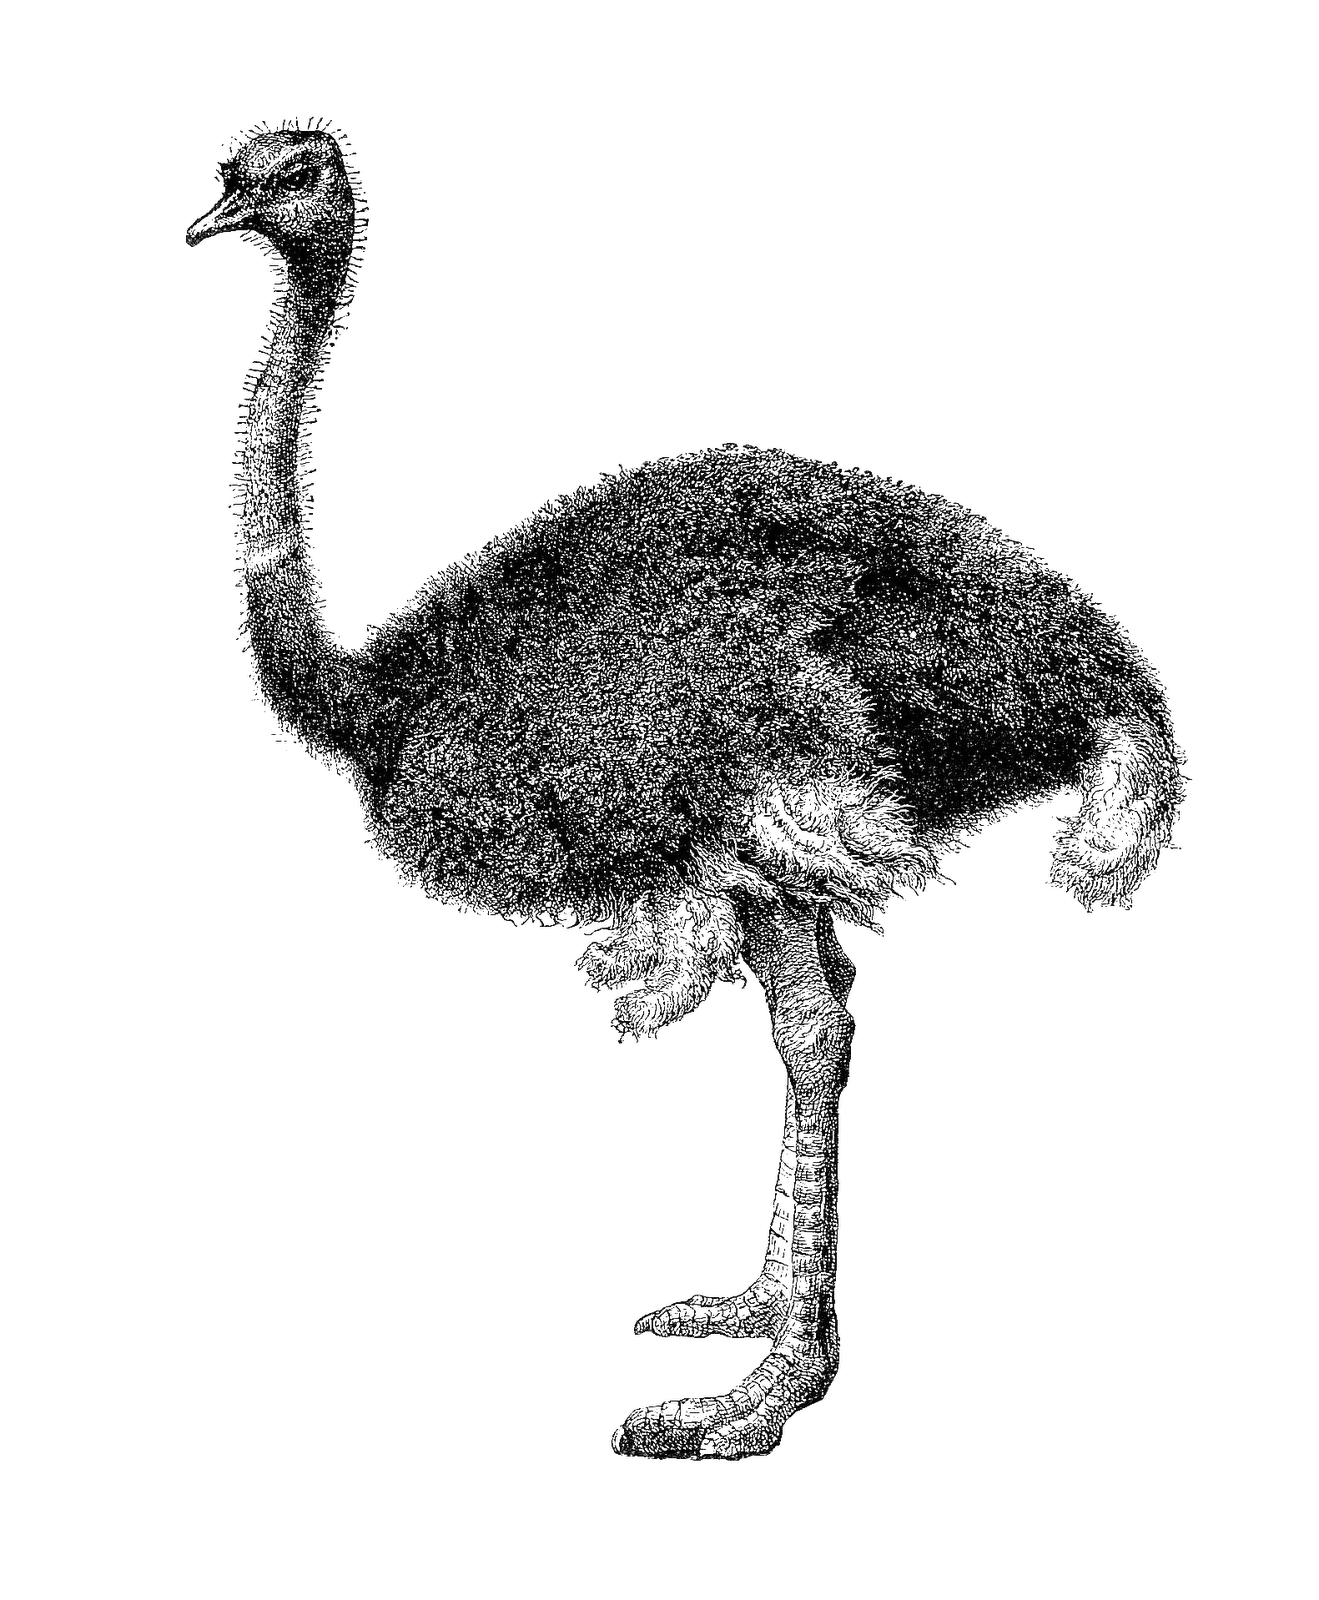 graphic freeuse stock Antique images free animal. Ostrich black and white clipart